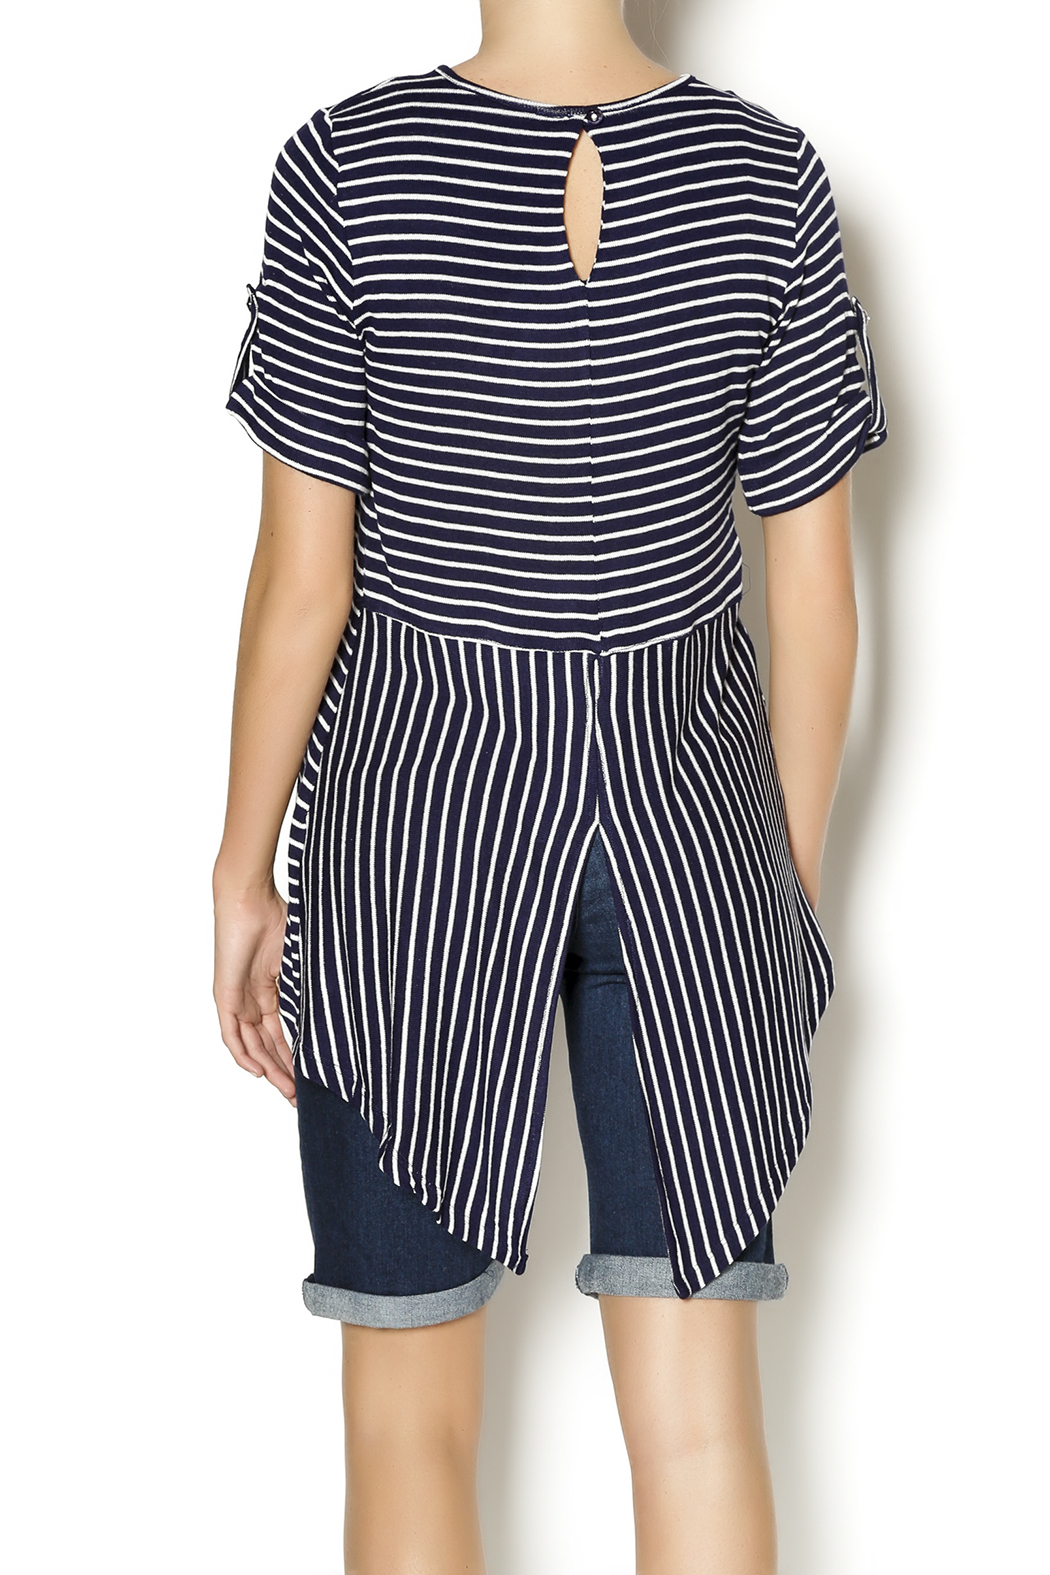 Mesmerize Striped High Low Top - Back Cropped Image